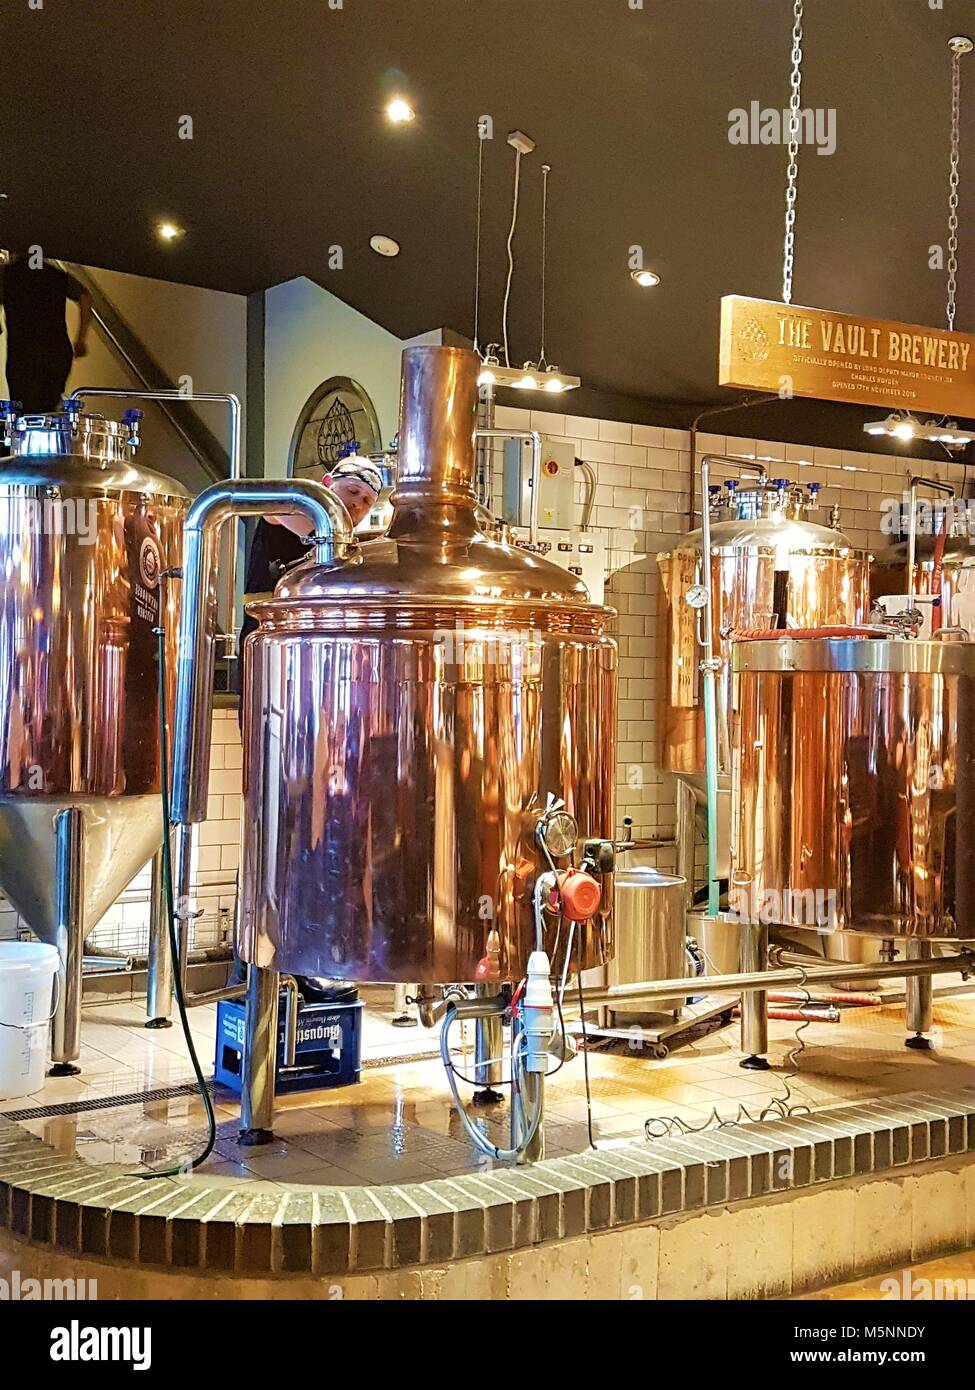 Man brewing beer in copper stills at the Brew House and Kitchen, Bedford, UK - Stock Image